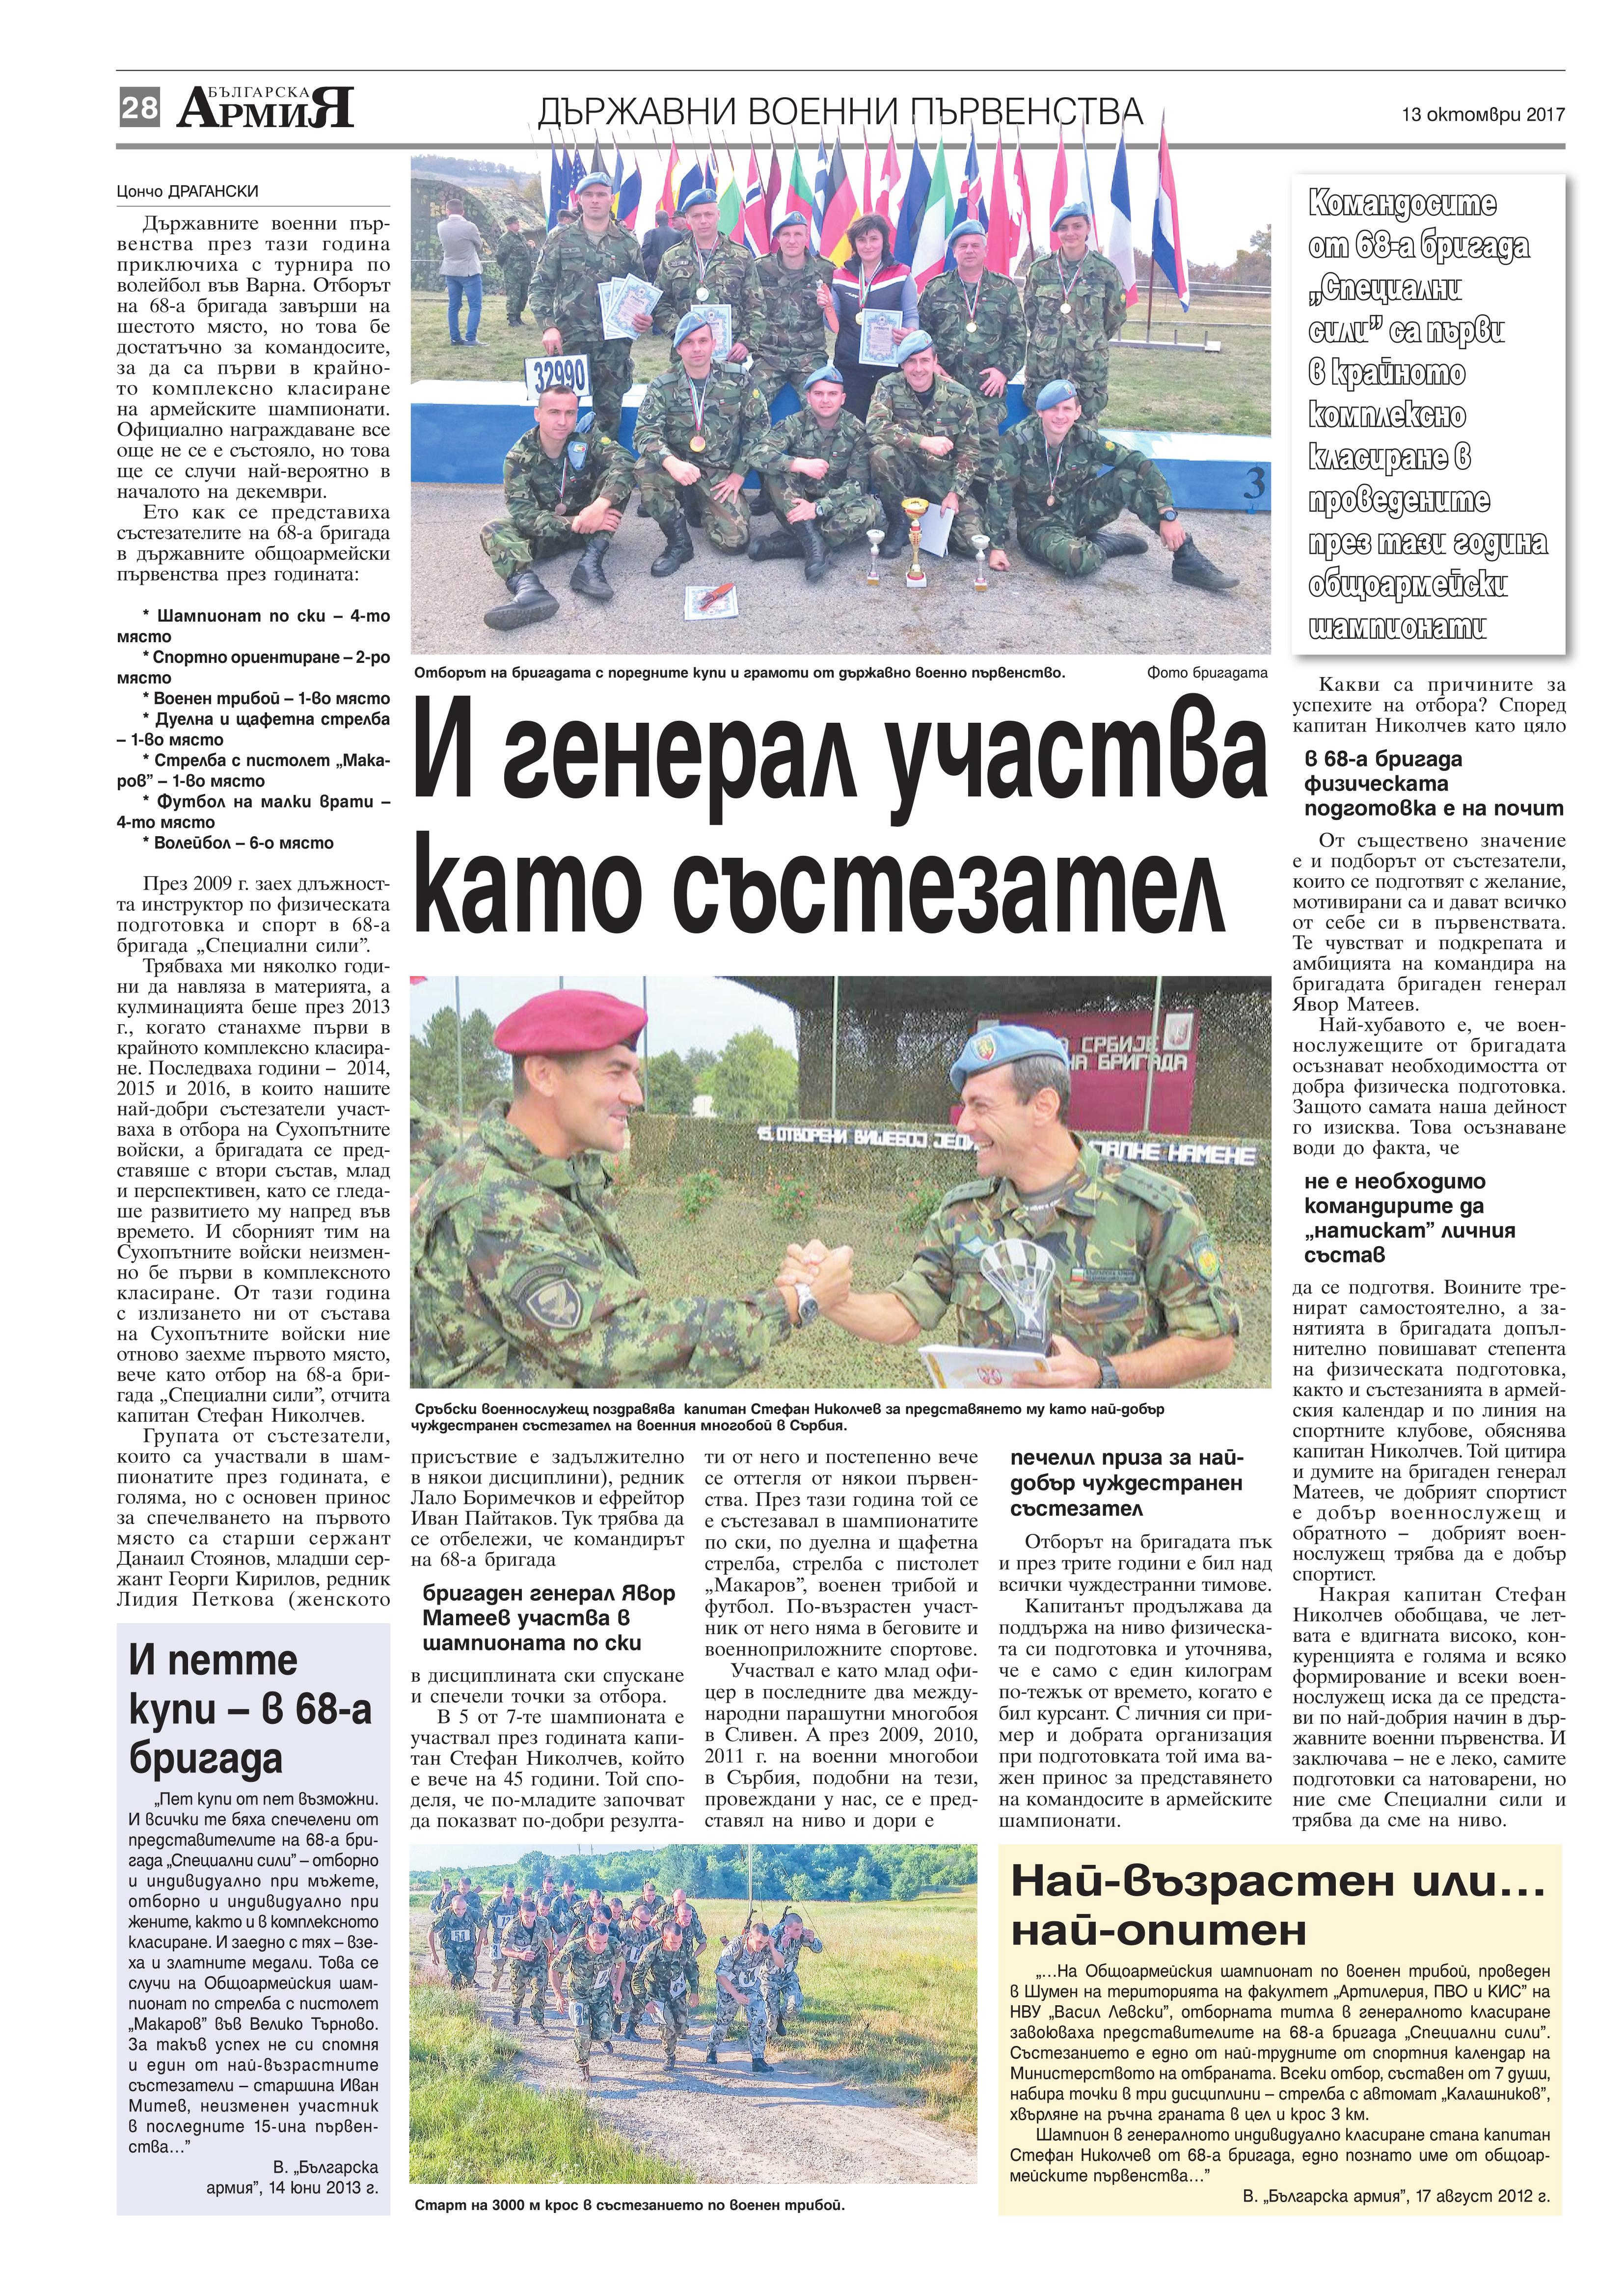 http://armymedia.bg/wp-content/uploads/2015/06/28.page1_-29.jpg